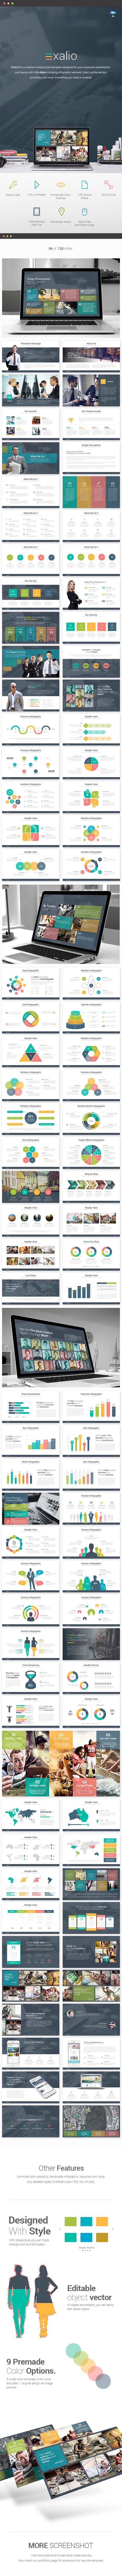 GraphicRiver Exalio Keynote Template 11469569